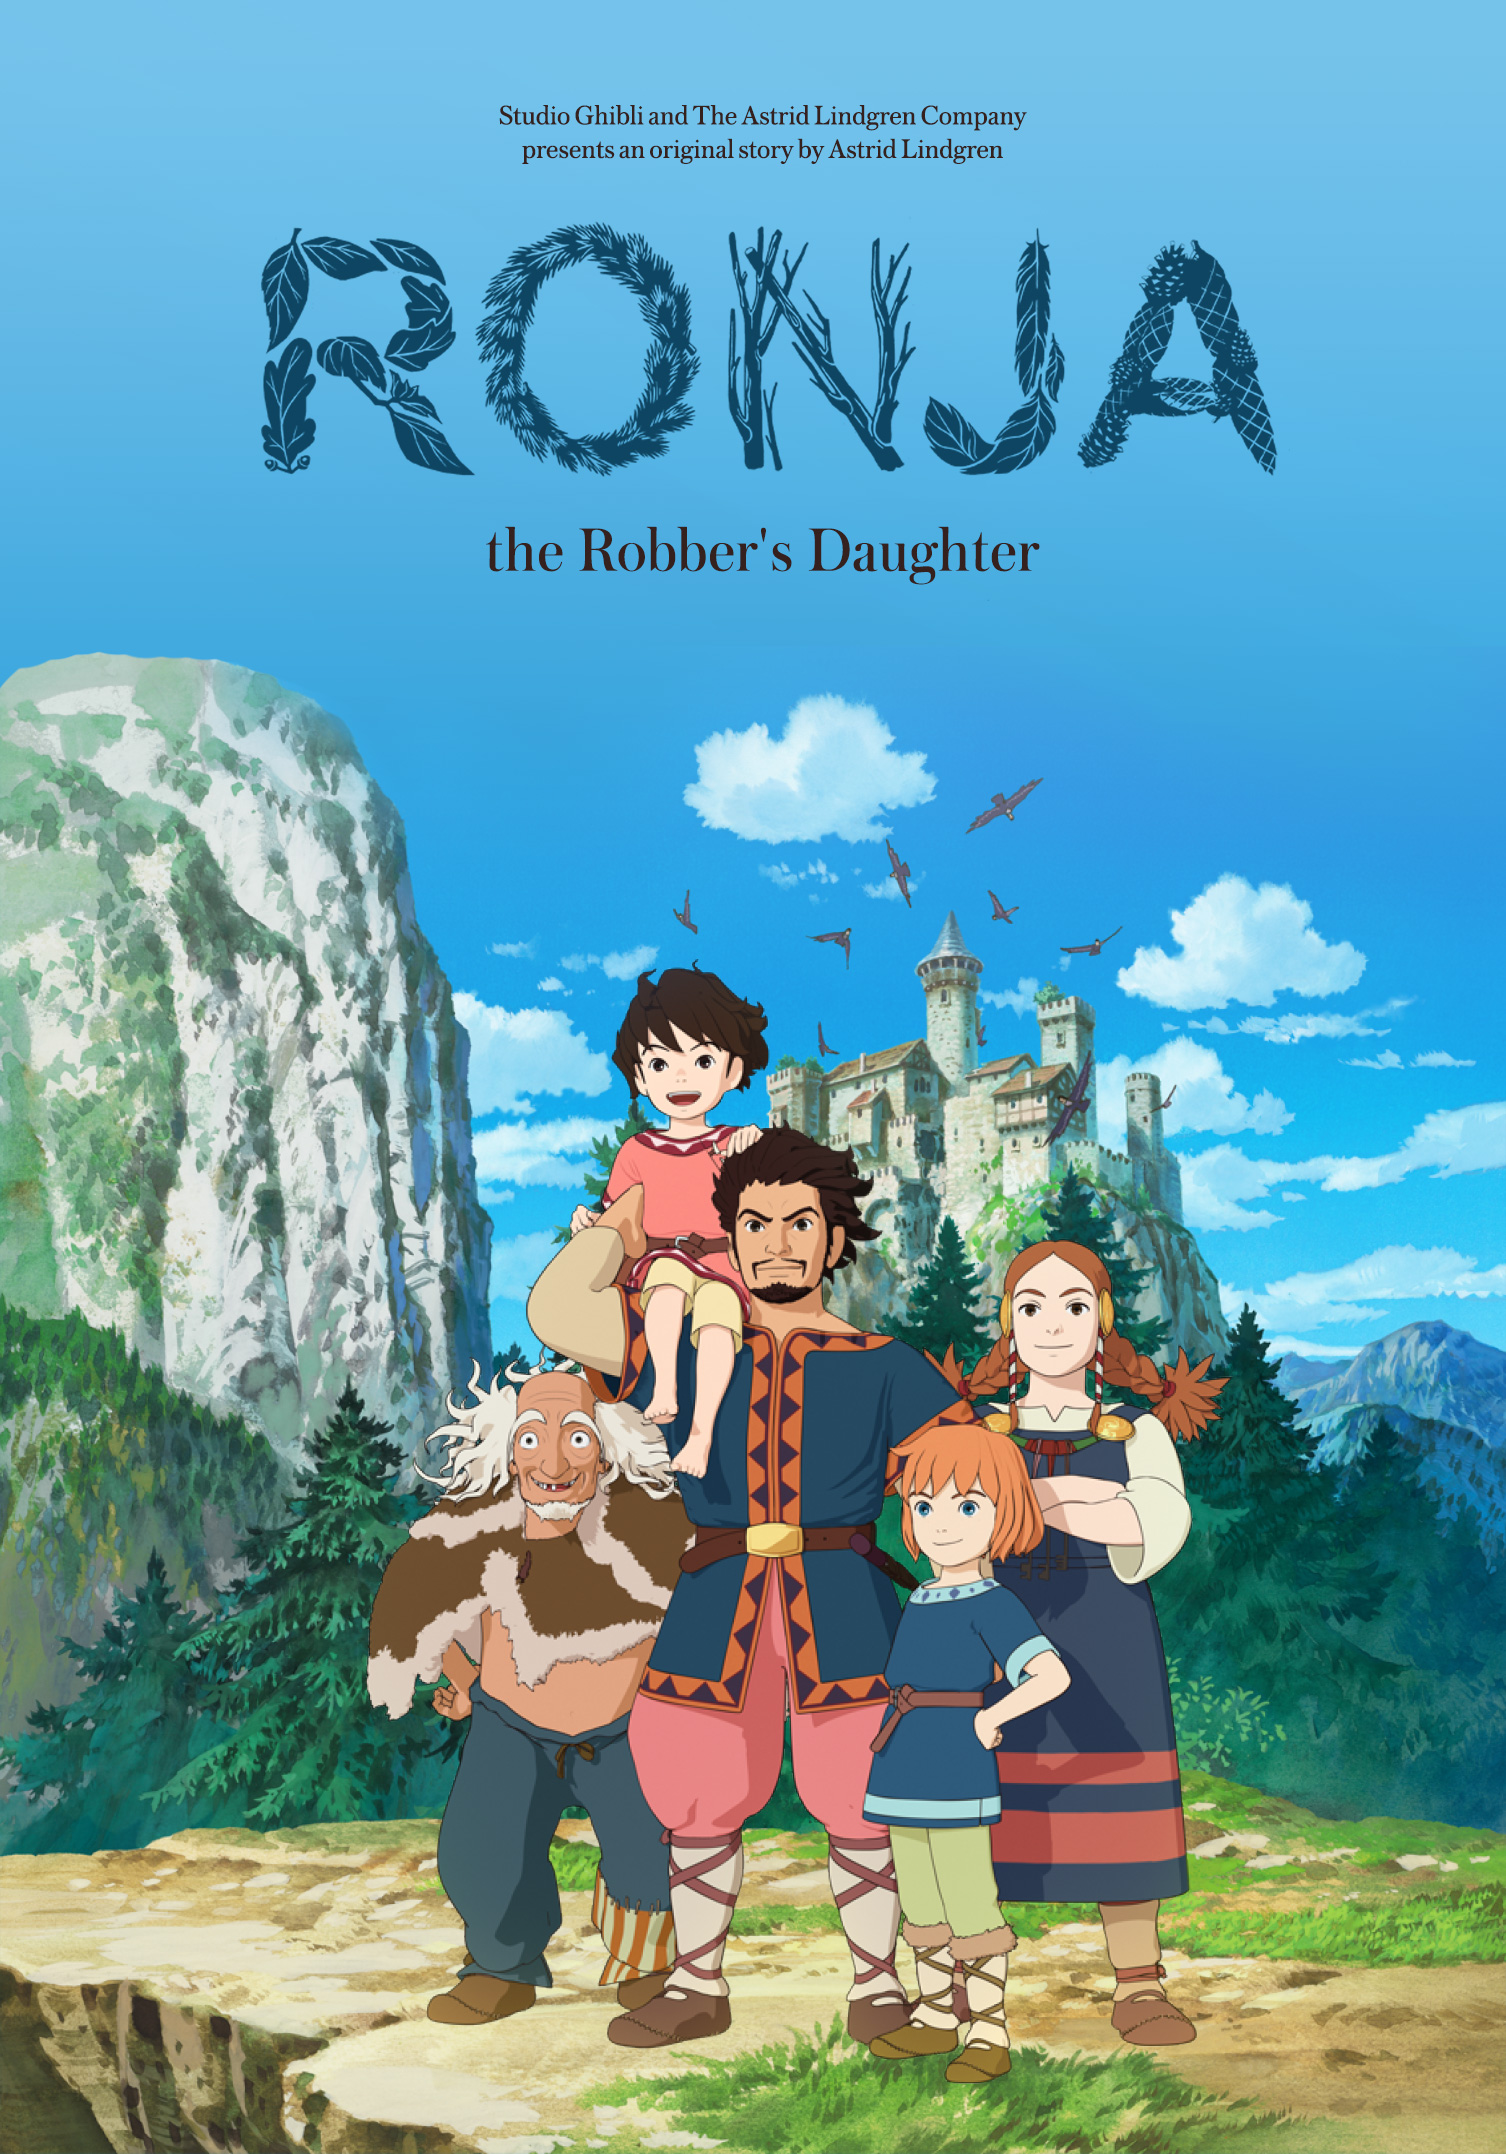 Ronja t he Robber's daughter   Identity and logo